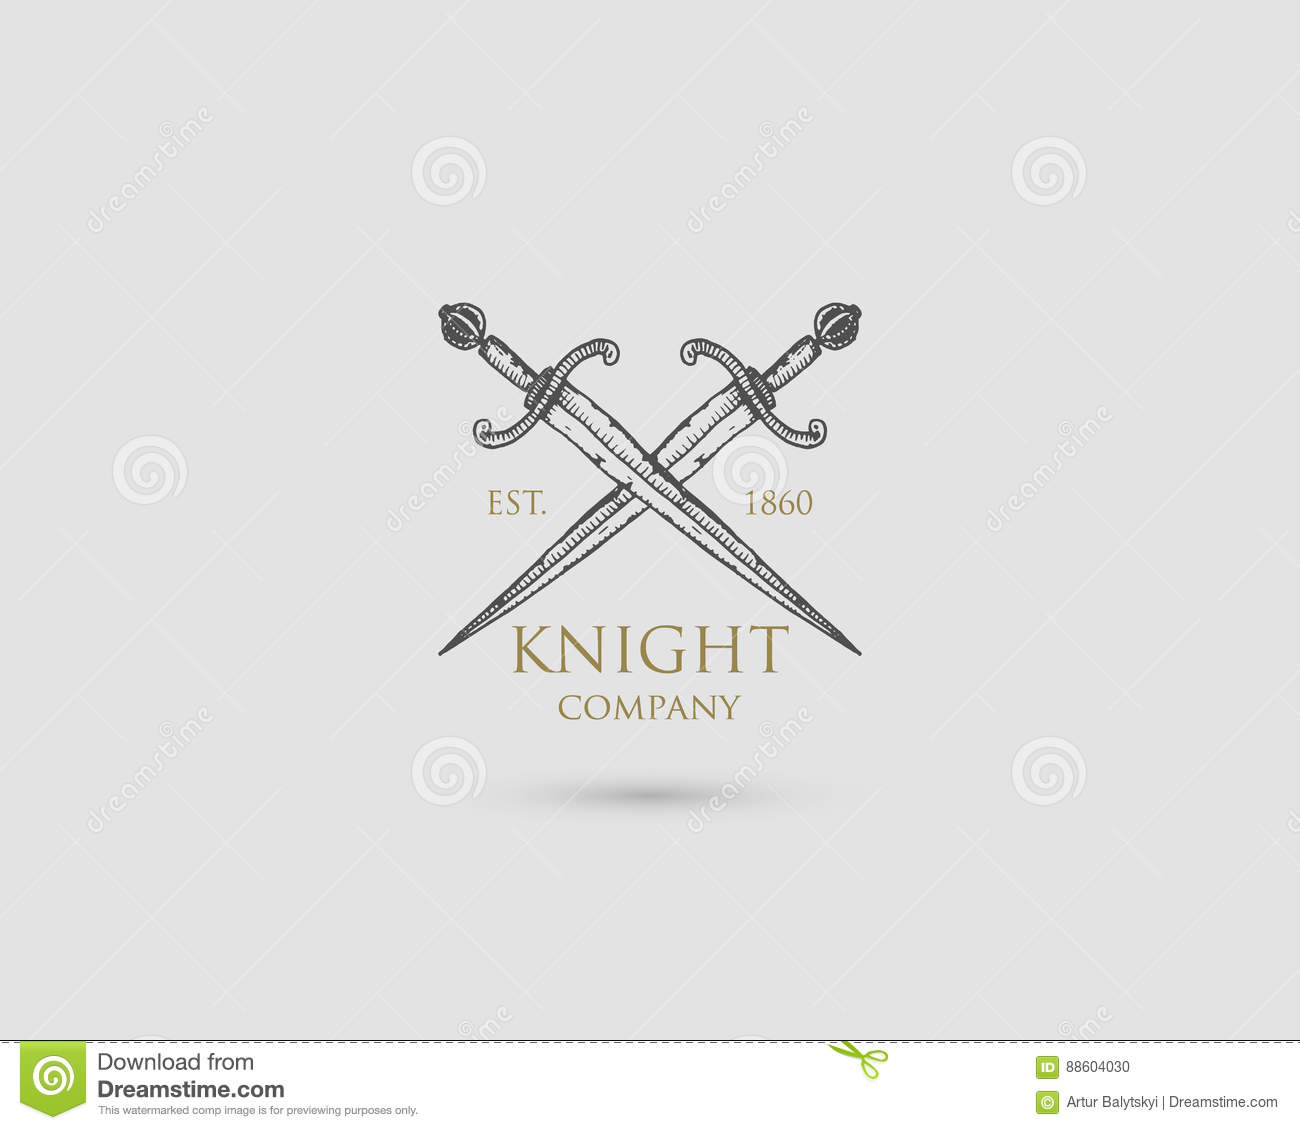 Vintage Sword Diagram Kata Diagrams Wire Origami This Is The We Make In Swords Logo Medieval Knight Dagger Antique Symbol Manual Of Arms